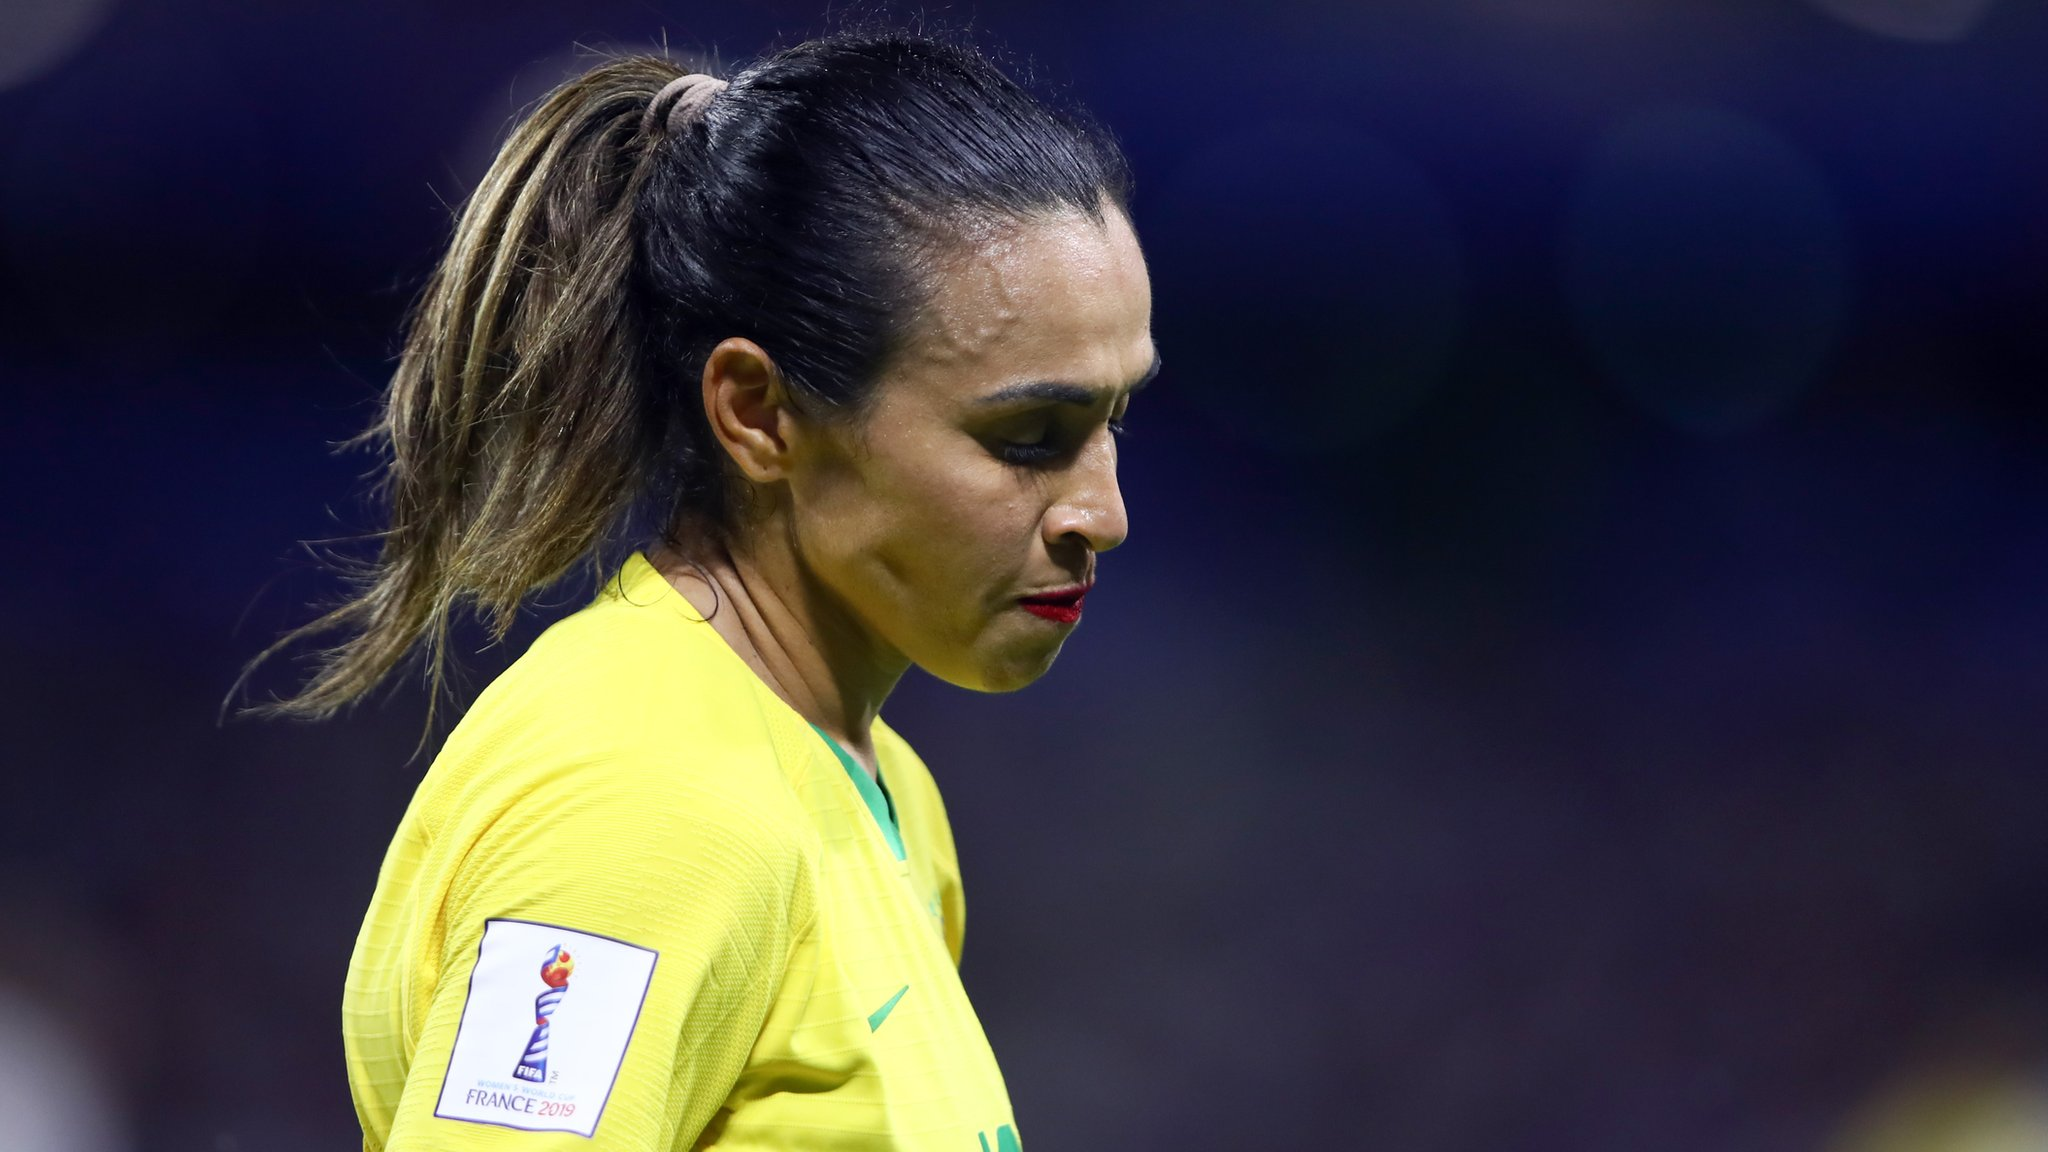 World Cup 2019: Brazil's Marta gives emotional speech to next generation